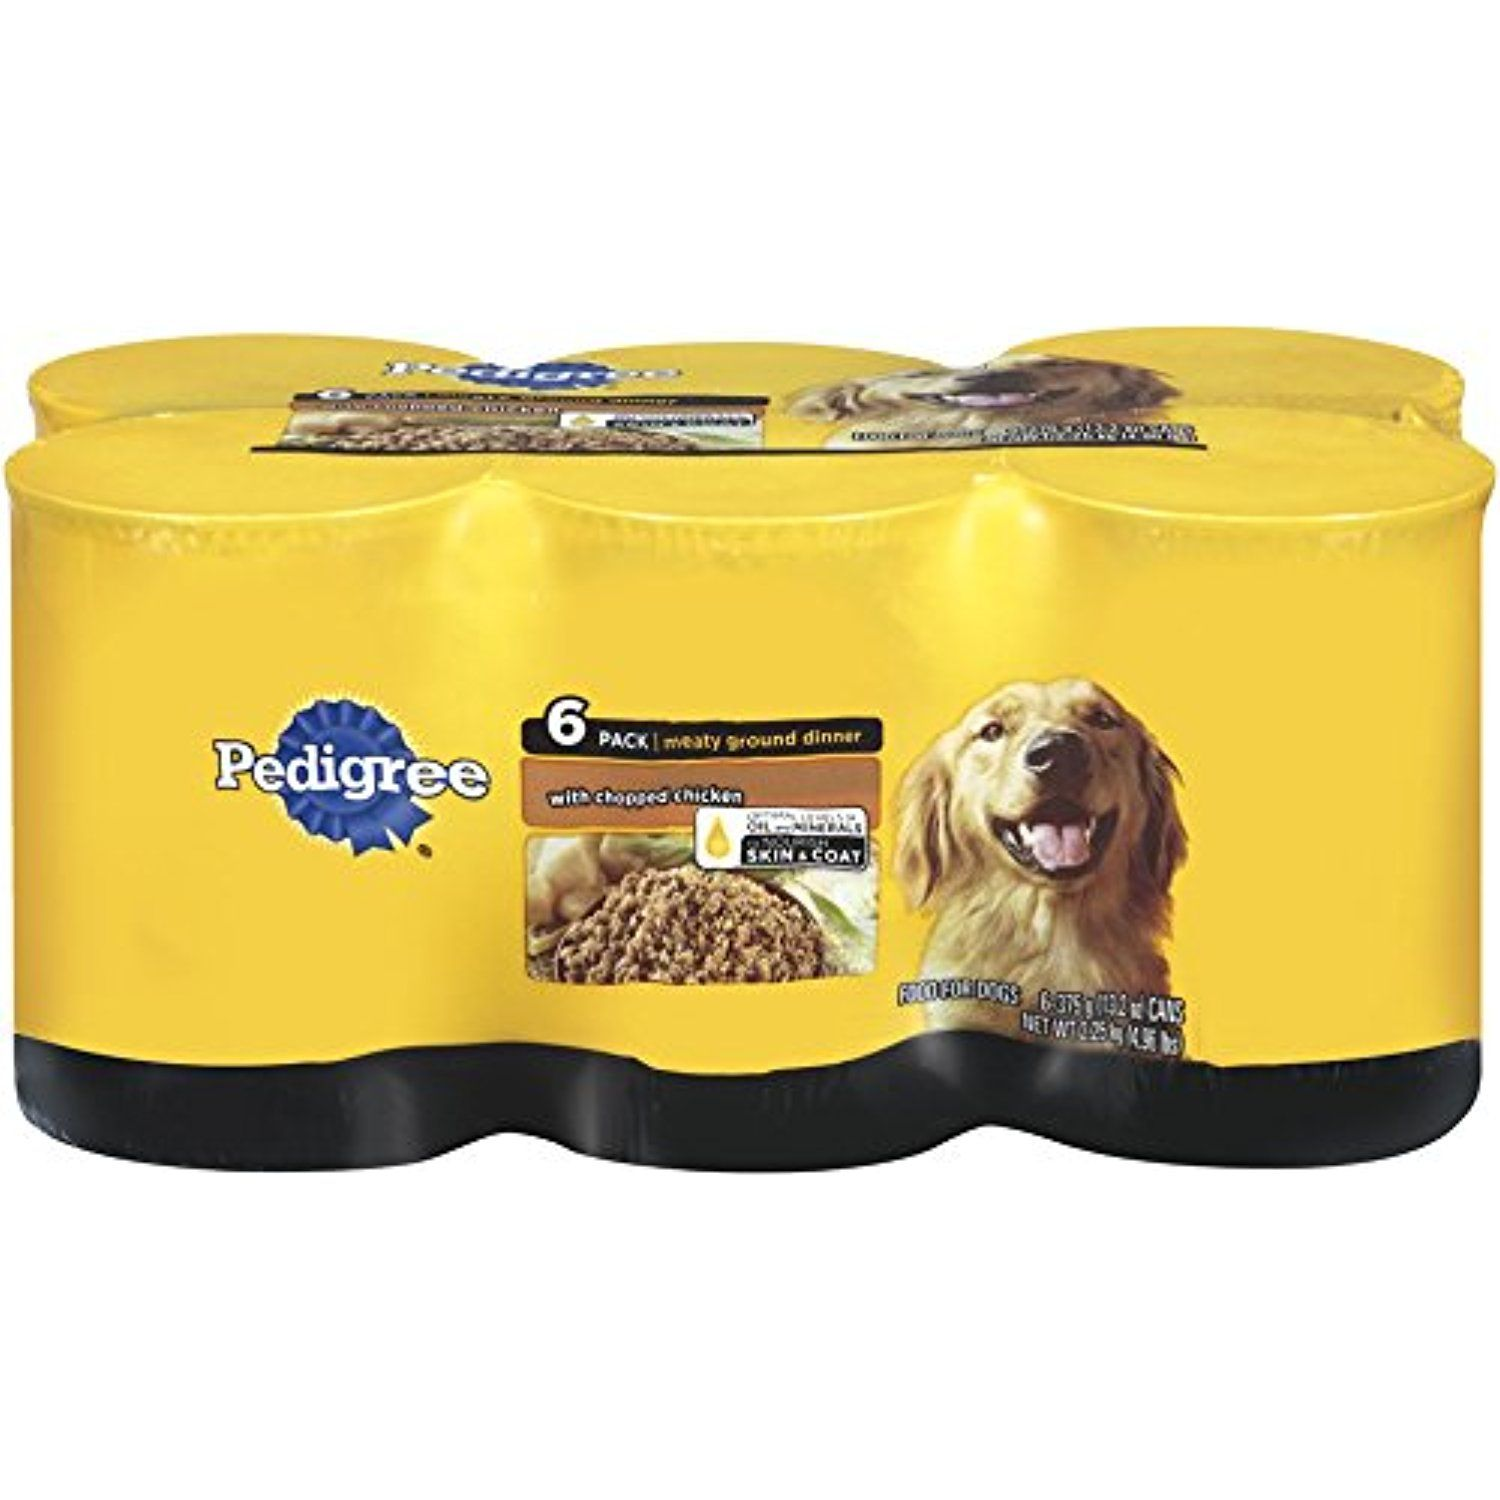 Pedigree meaty ground dinner with chopped chicken canned